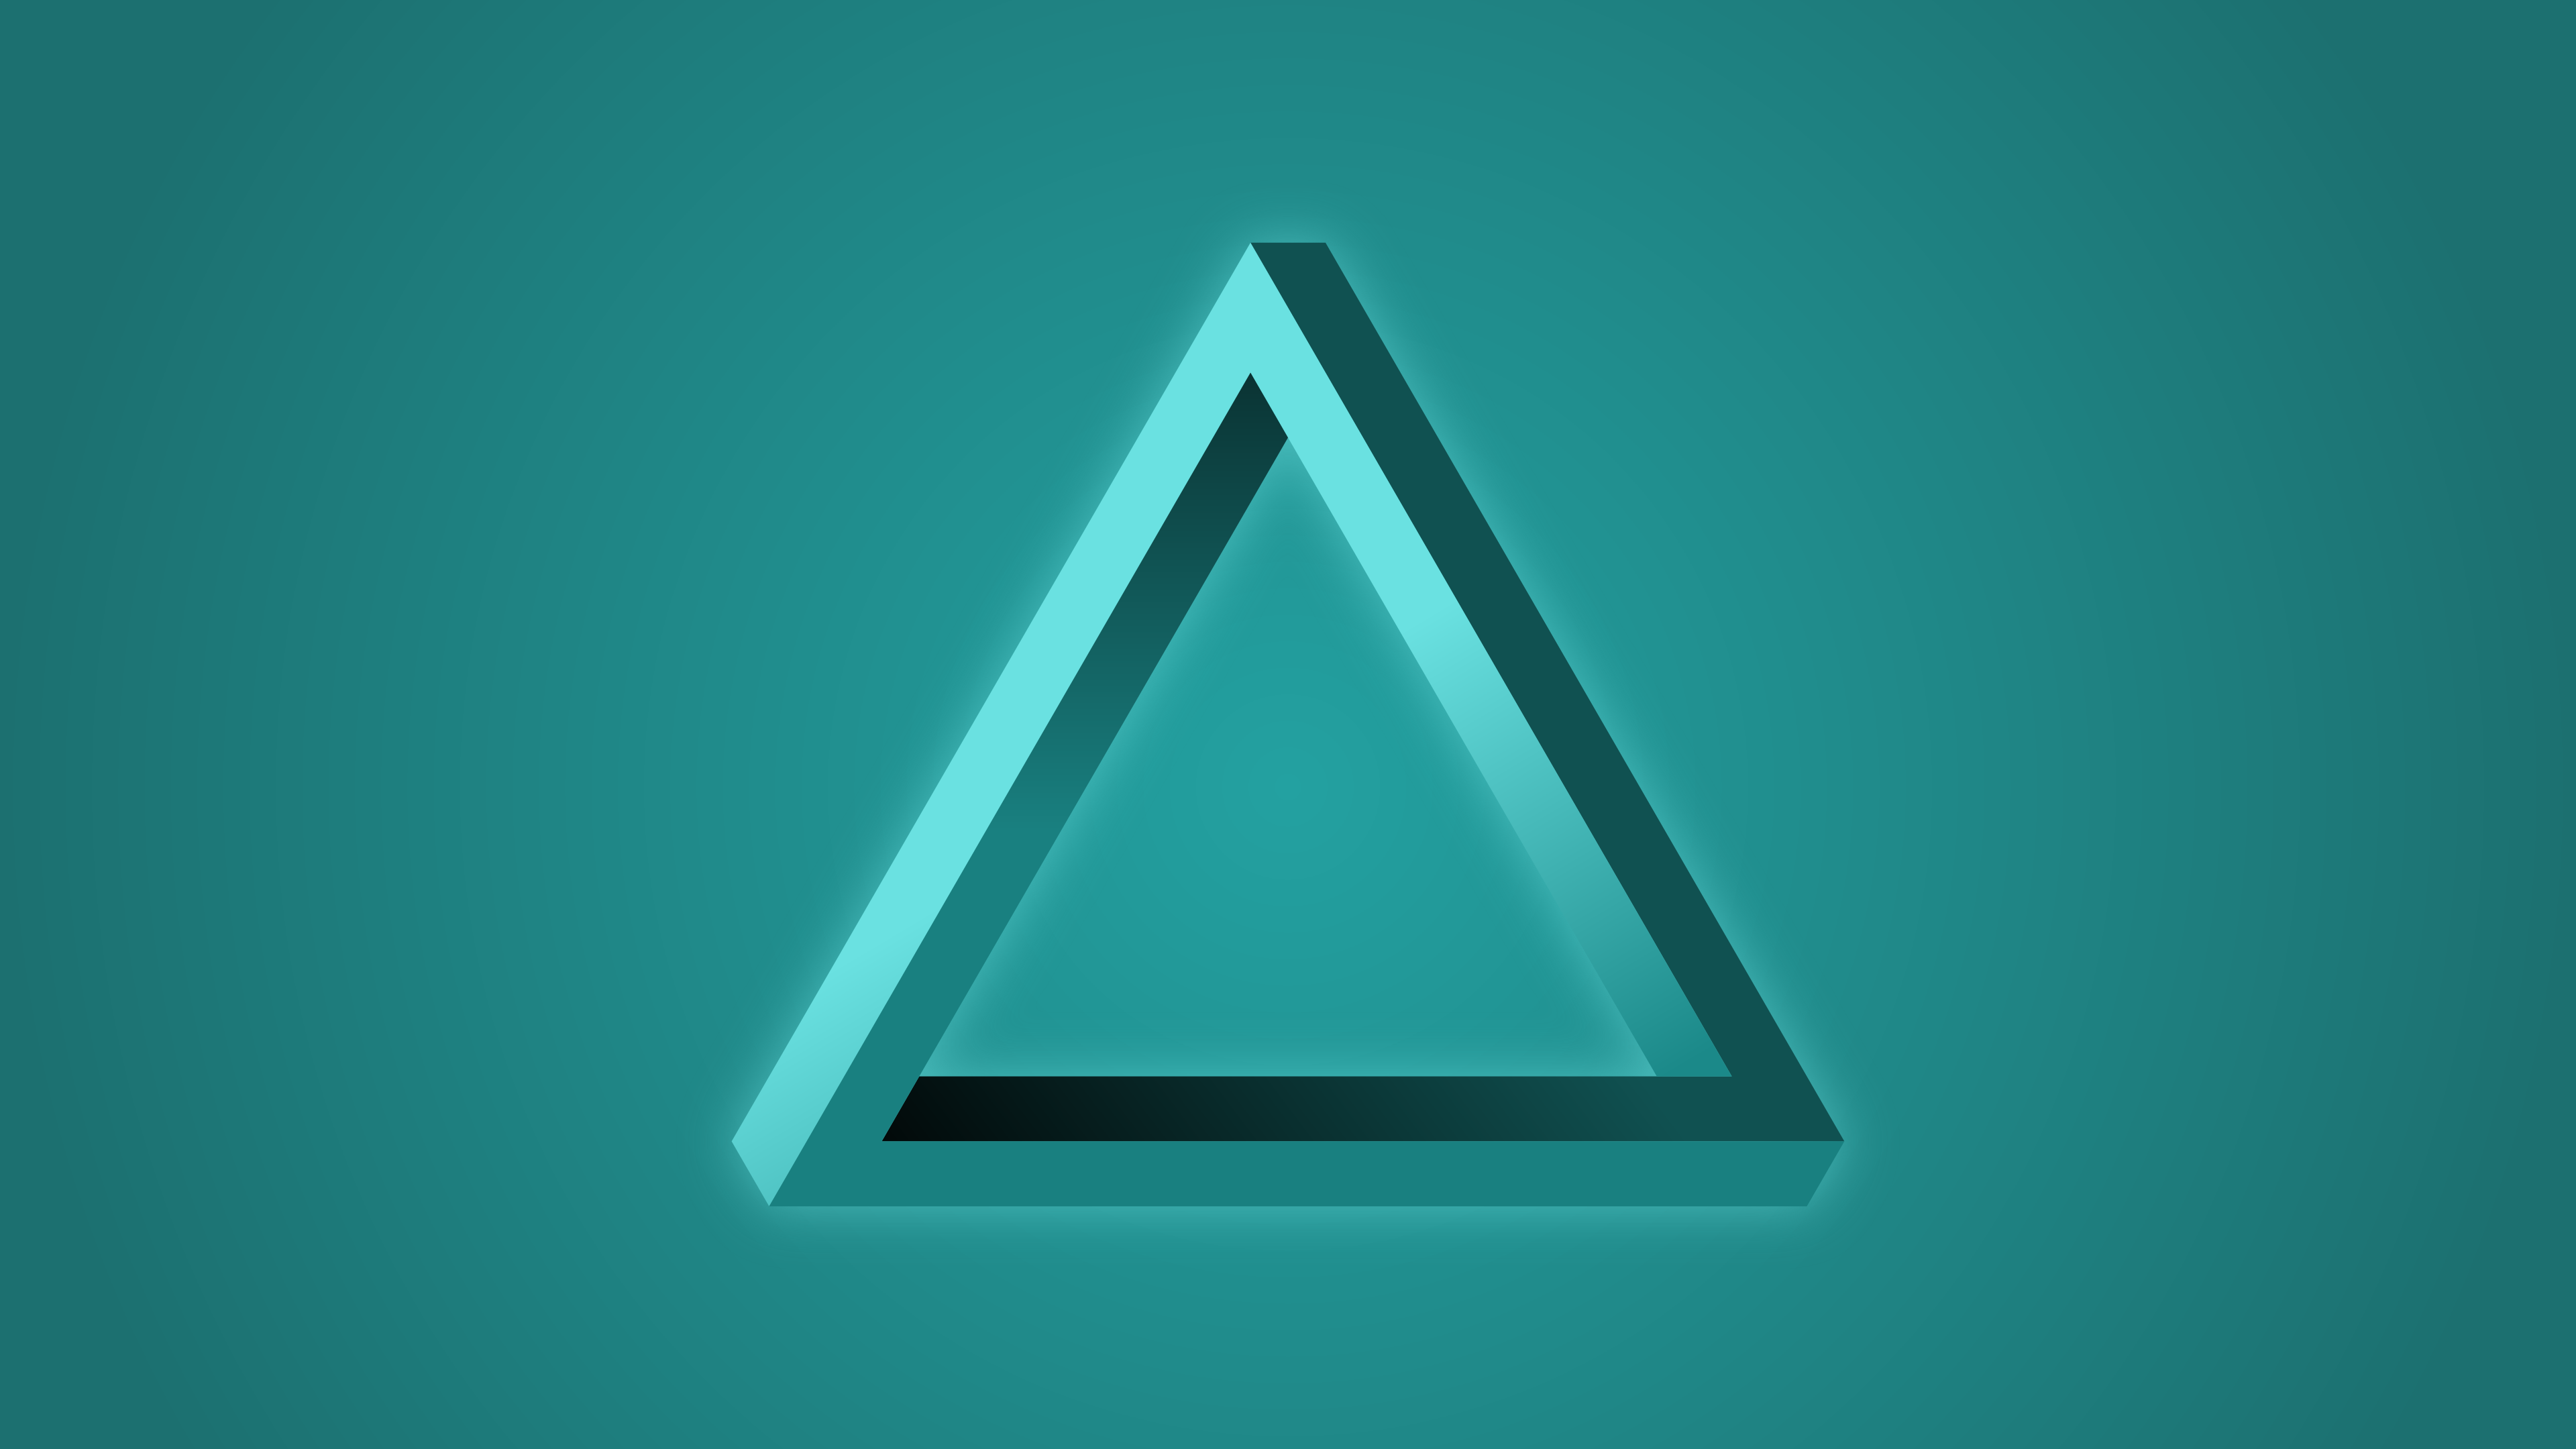 Impossible Triangle Wallpaper [4k] by ThePi7on on DeviantArt